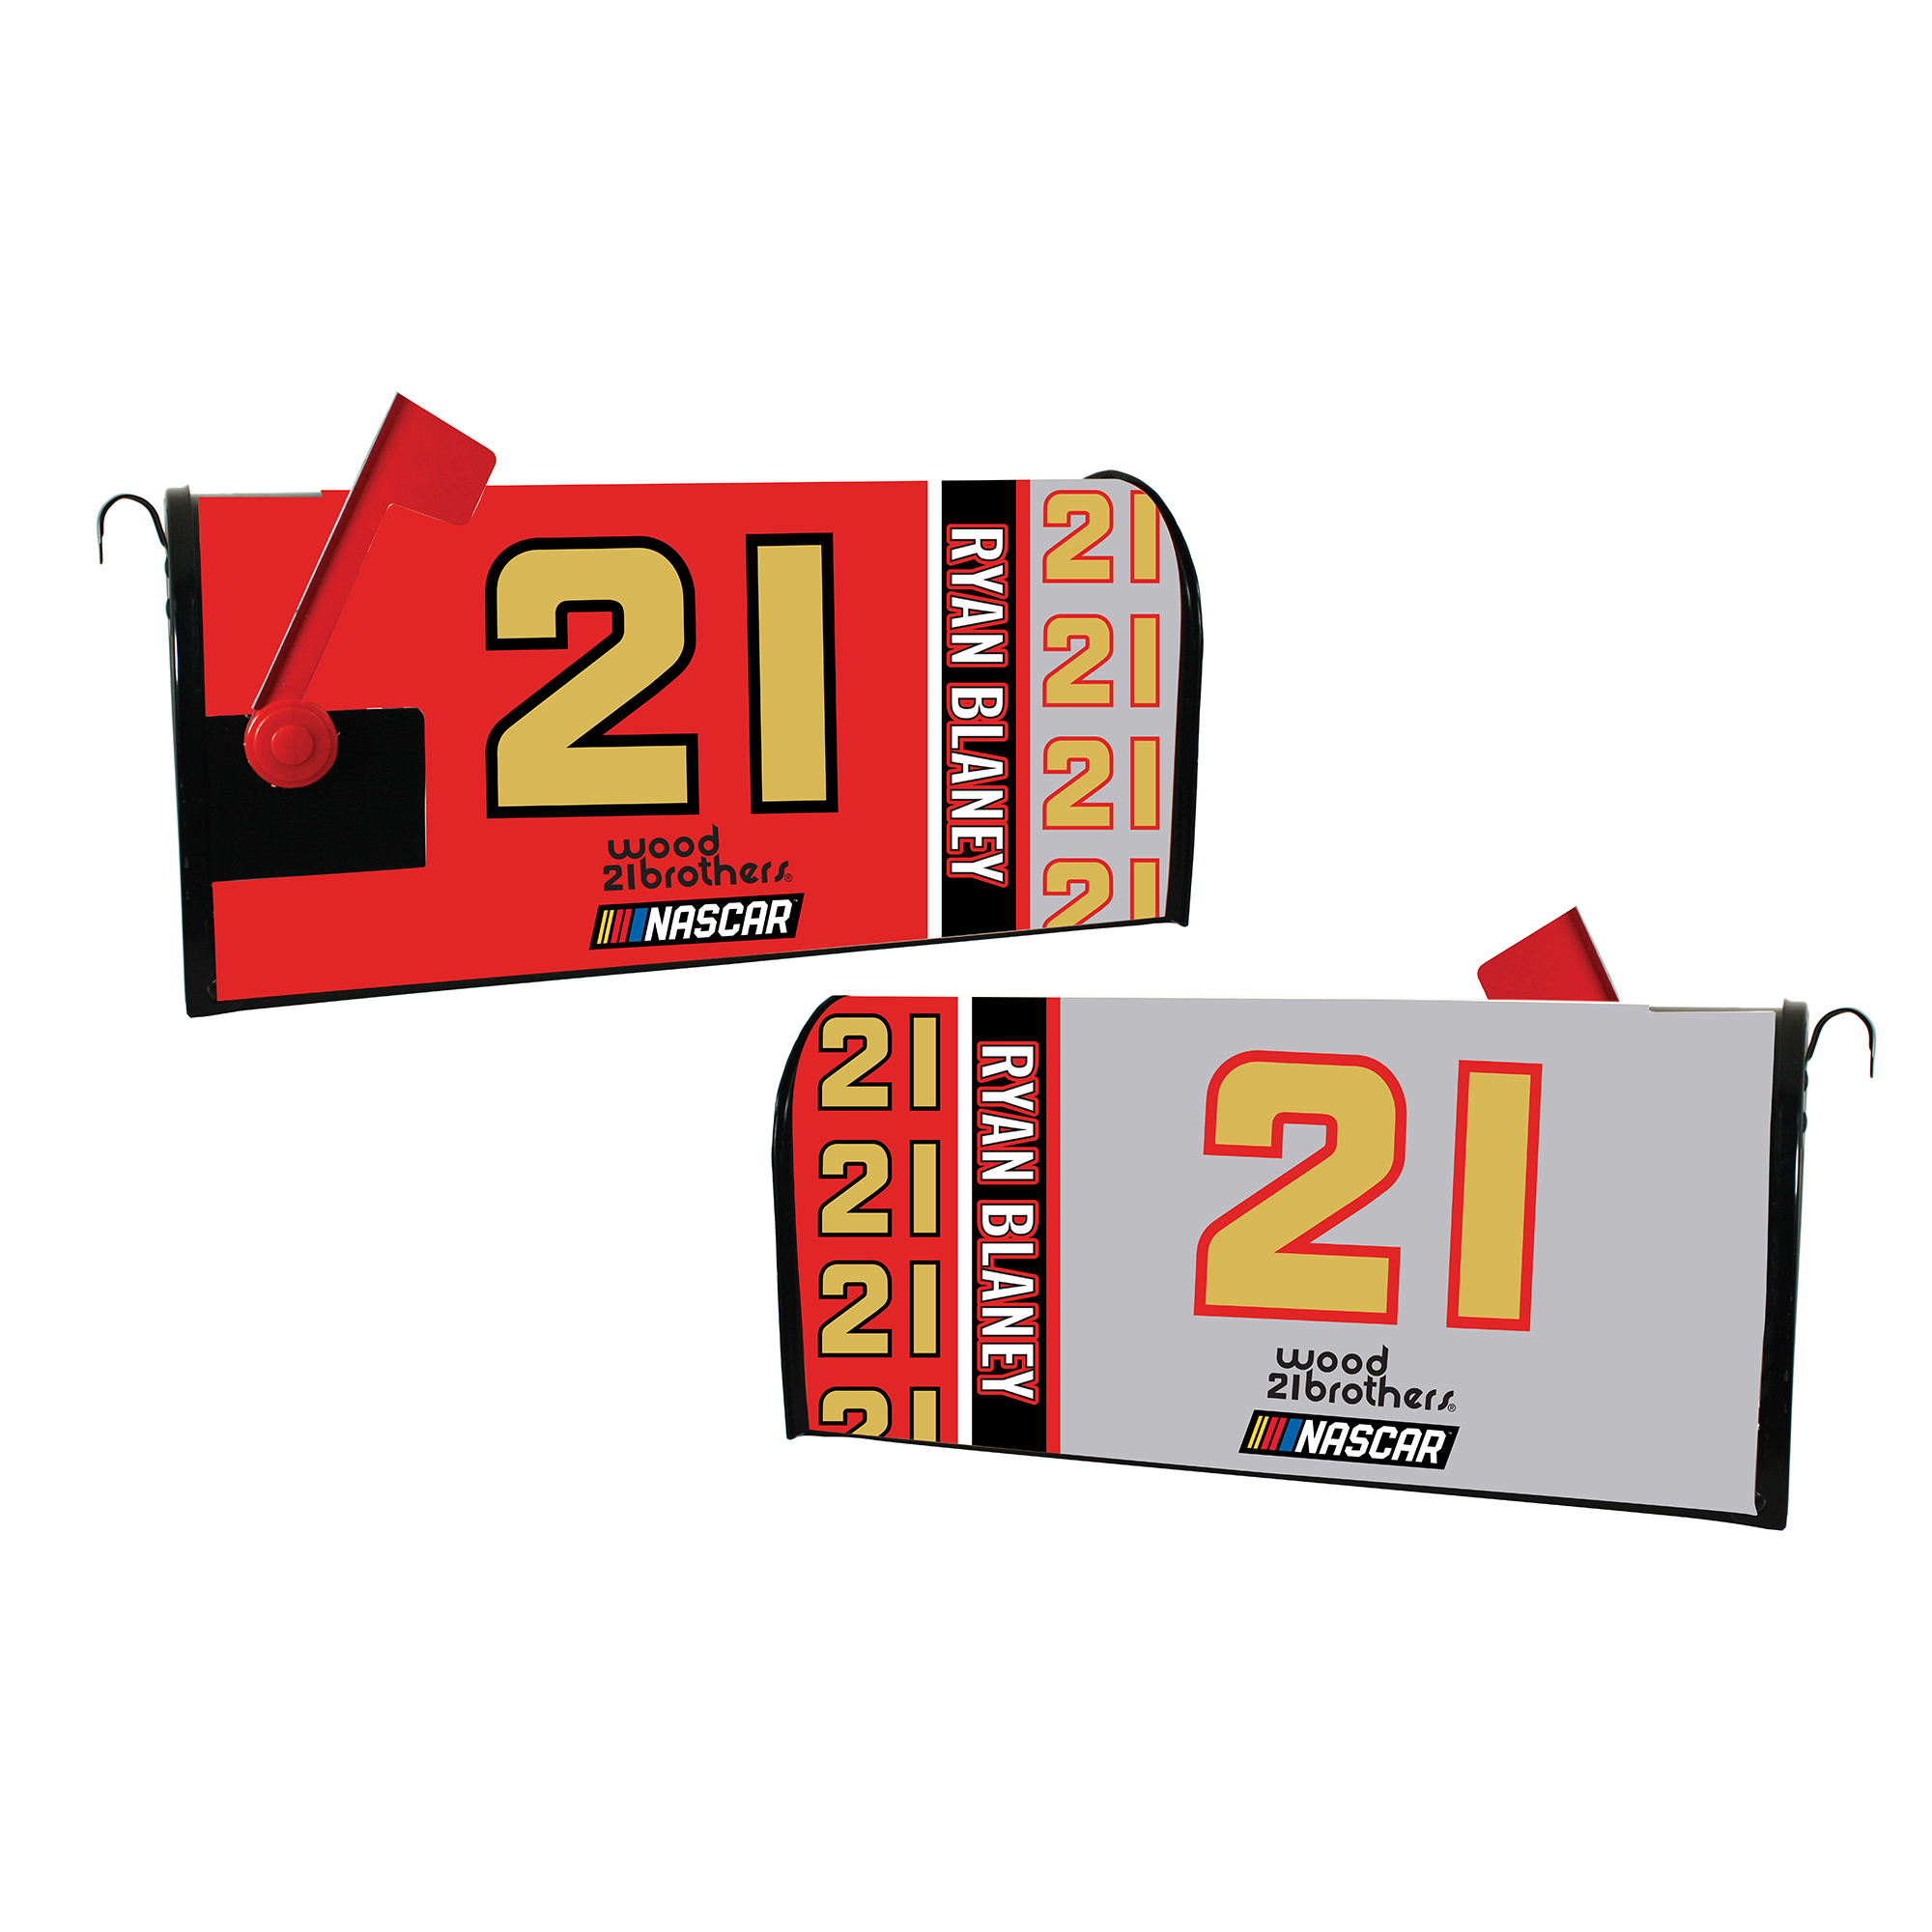 Ryan Blaney Mailbox Cover - No Size